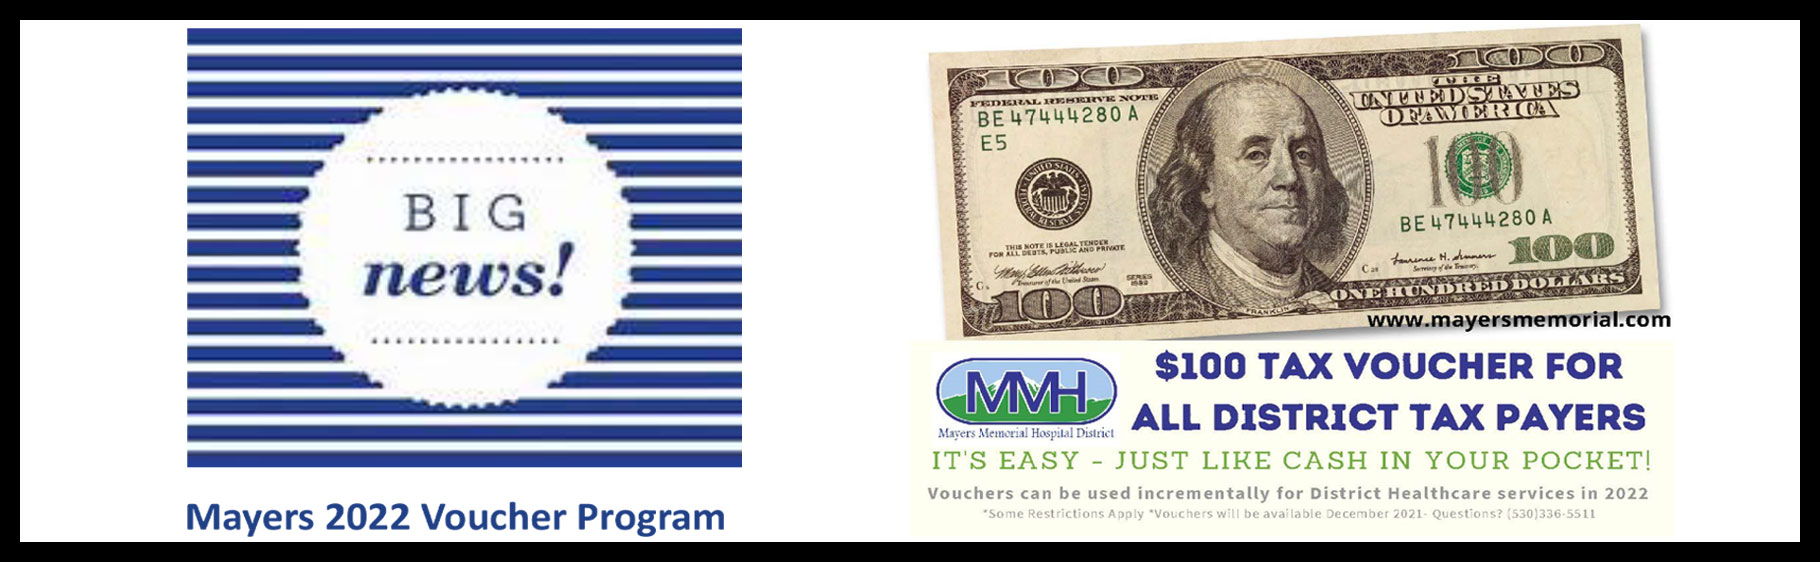 Mayers 2022 Voucher Program  $100 TAX VOUCHER FOR ALL DISTRICT TAX PAYERS  It's easy - just like cash in your pocket!  Vouchers can be used incrementally for District Healthcare services in 2022  *Some Restrictions Apply *Vouchers will be available December 2021 - Questions? (530)336-5511